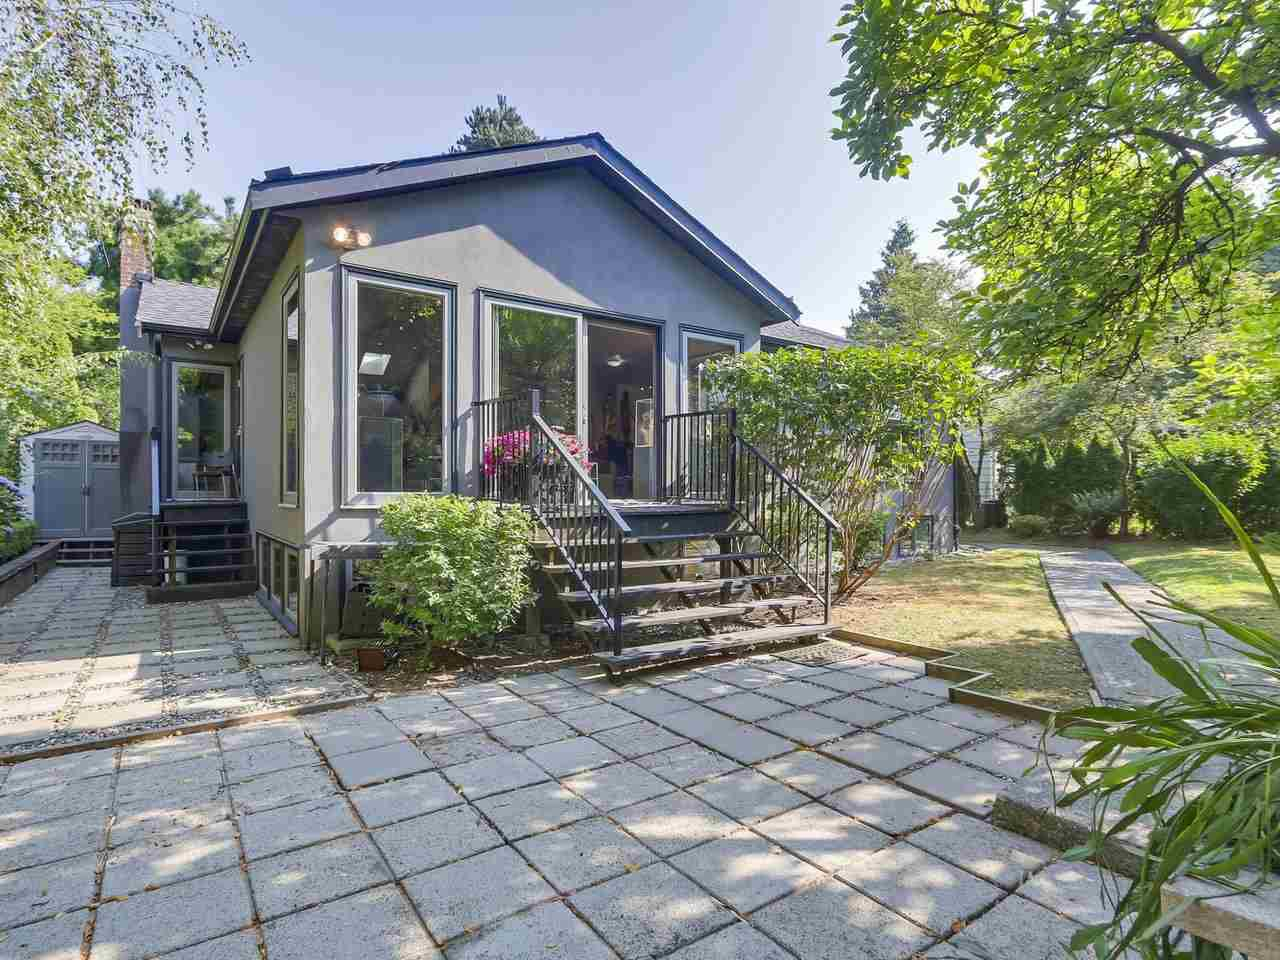 Main Photo: 1576 W 16TH Avenue in Vancouver: Shaughnessy House for sale (Vancouver West)  : MLS®# R2385449